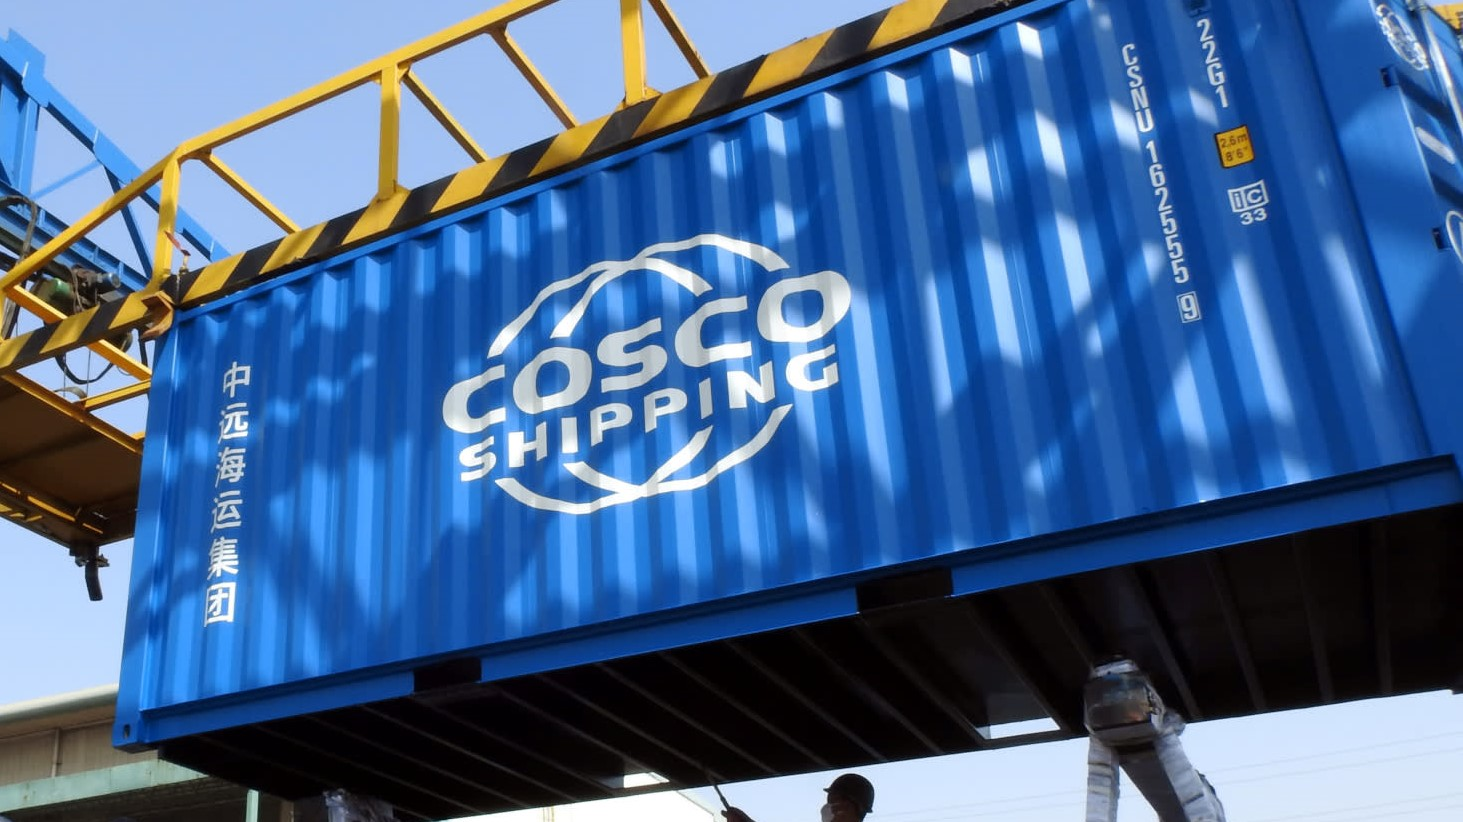 COSCO sees profits rise 25% in 2019 1